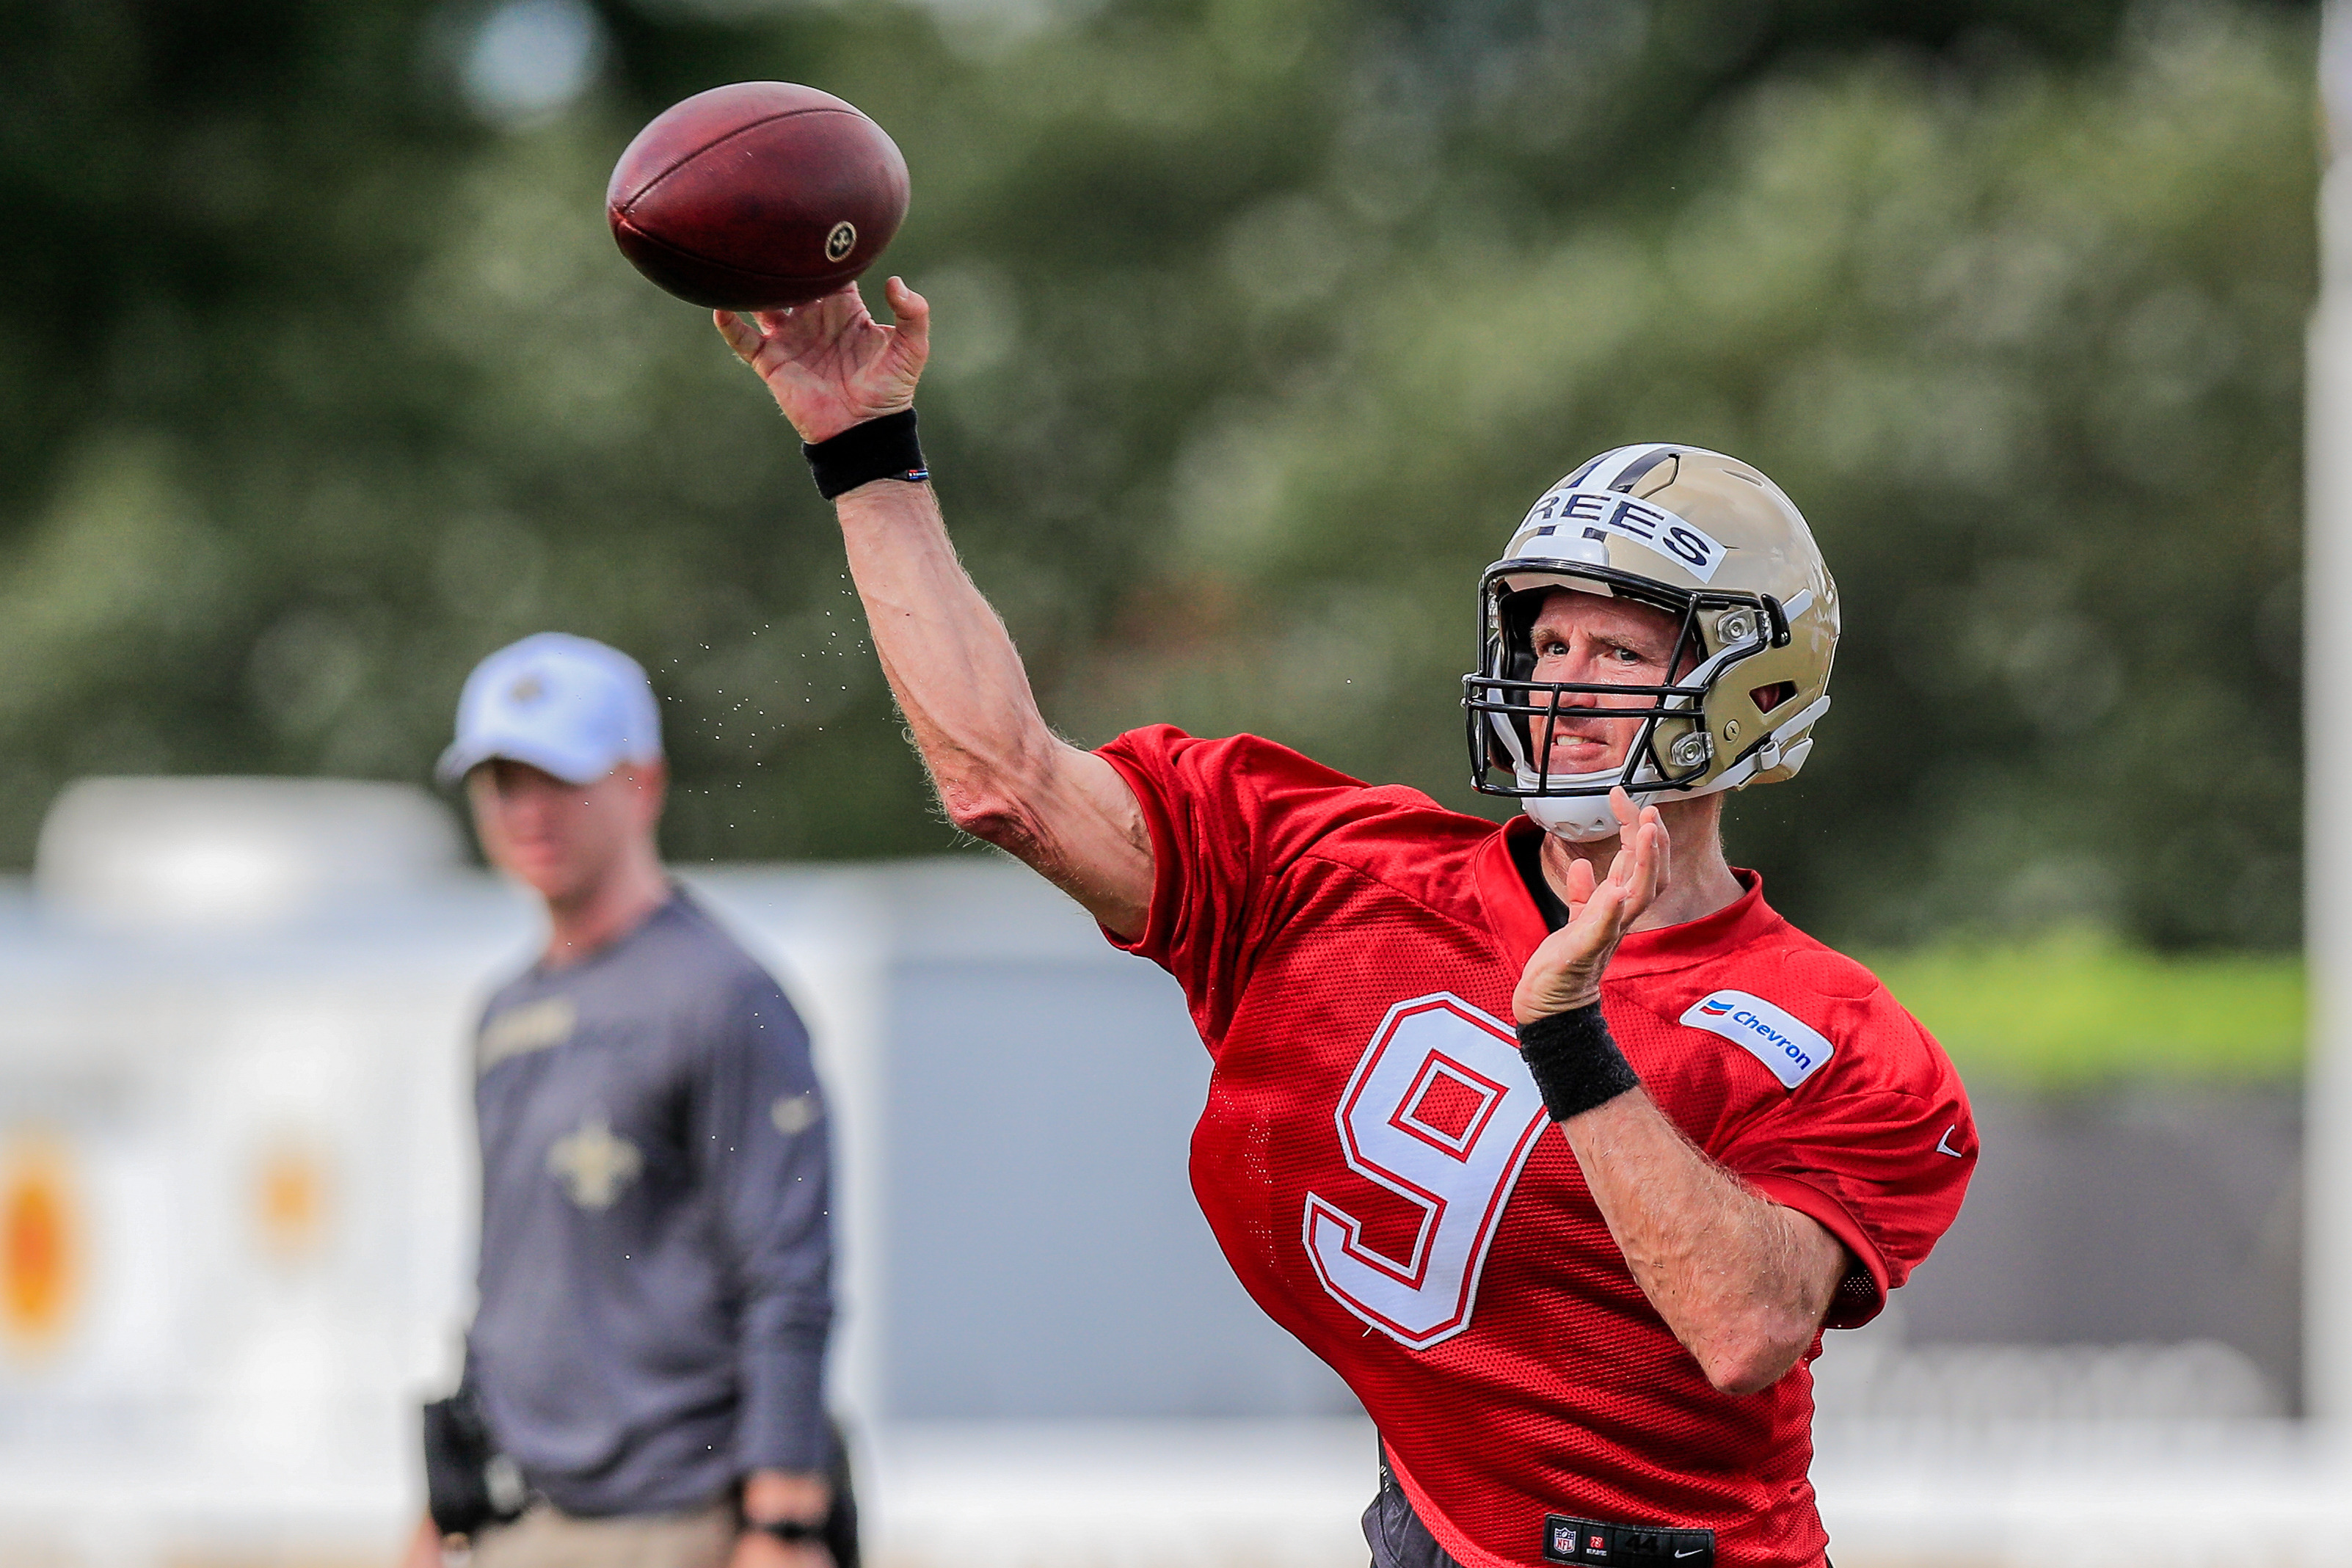 New Orleans Saints quarterback Drew Brees is set for his 19th season in the NFL